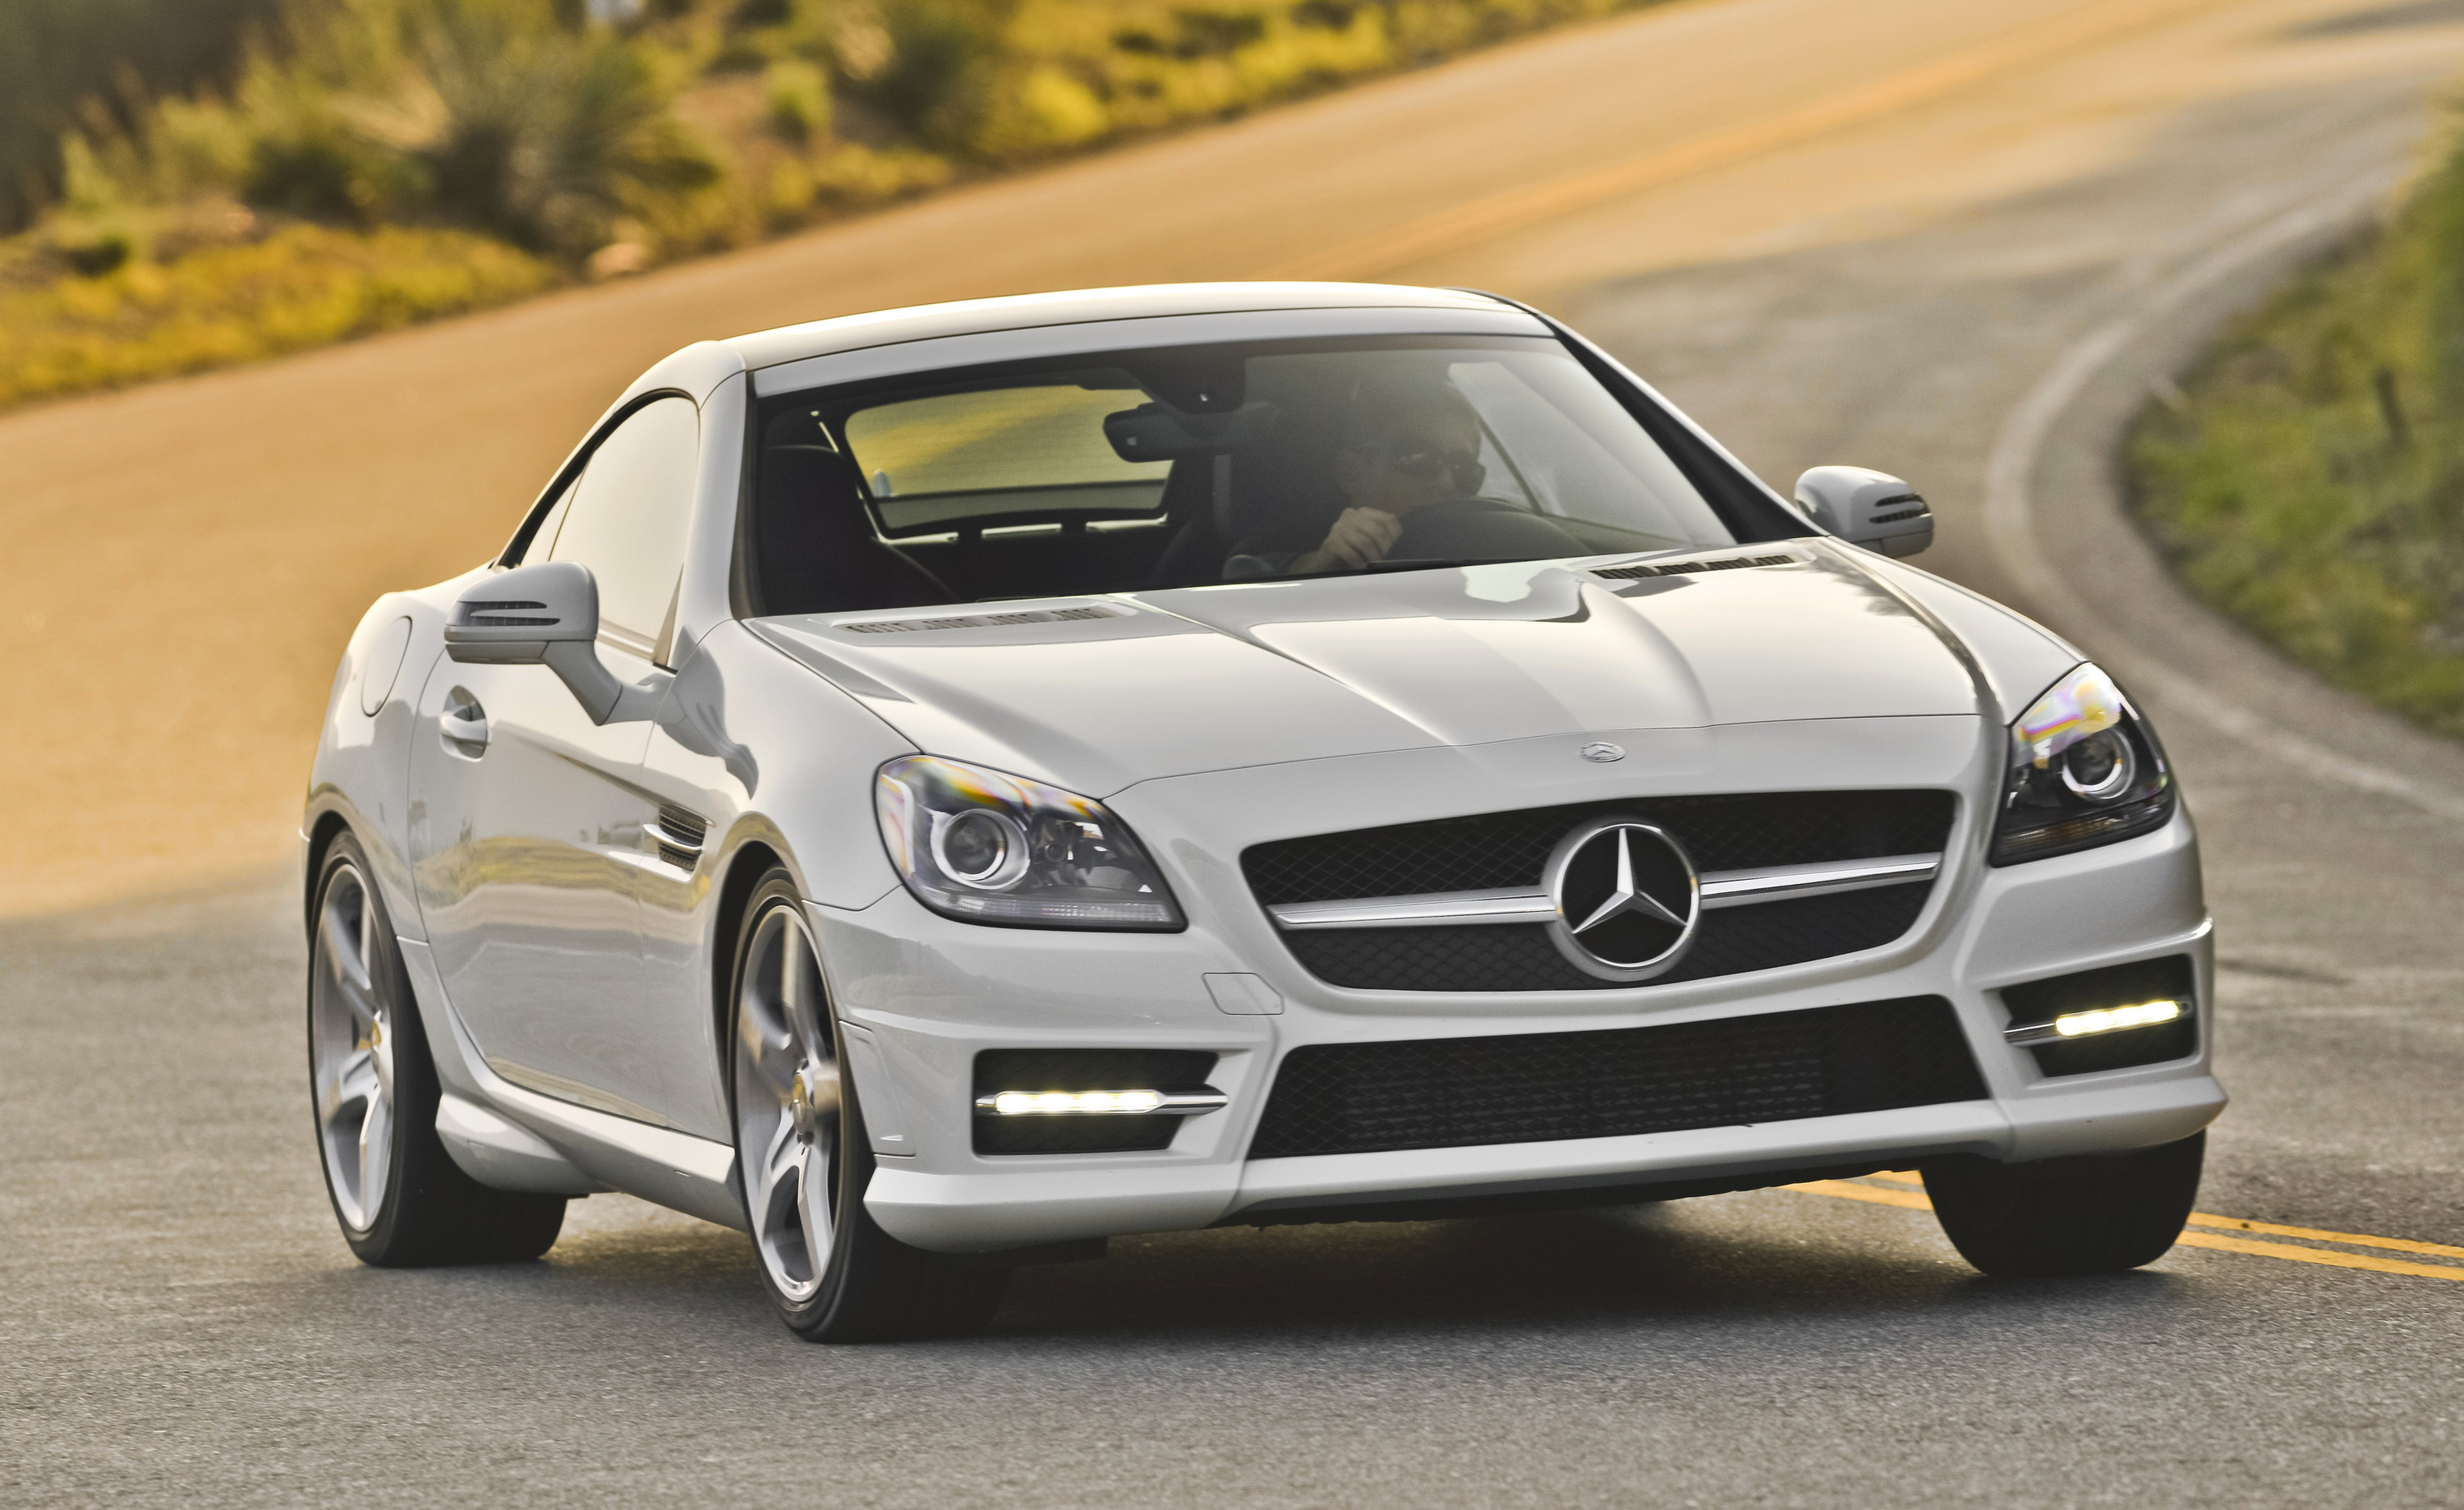 2014 Mercedes-Benz SLK-Class | Top Speed. »